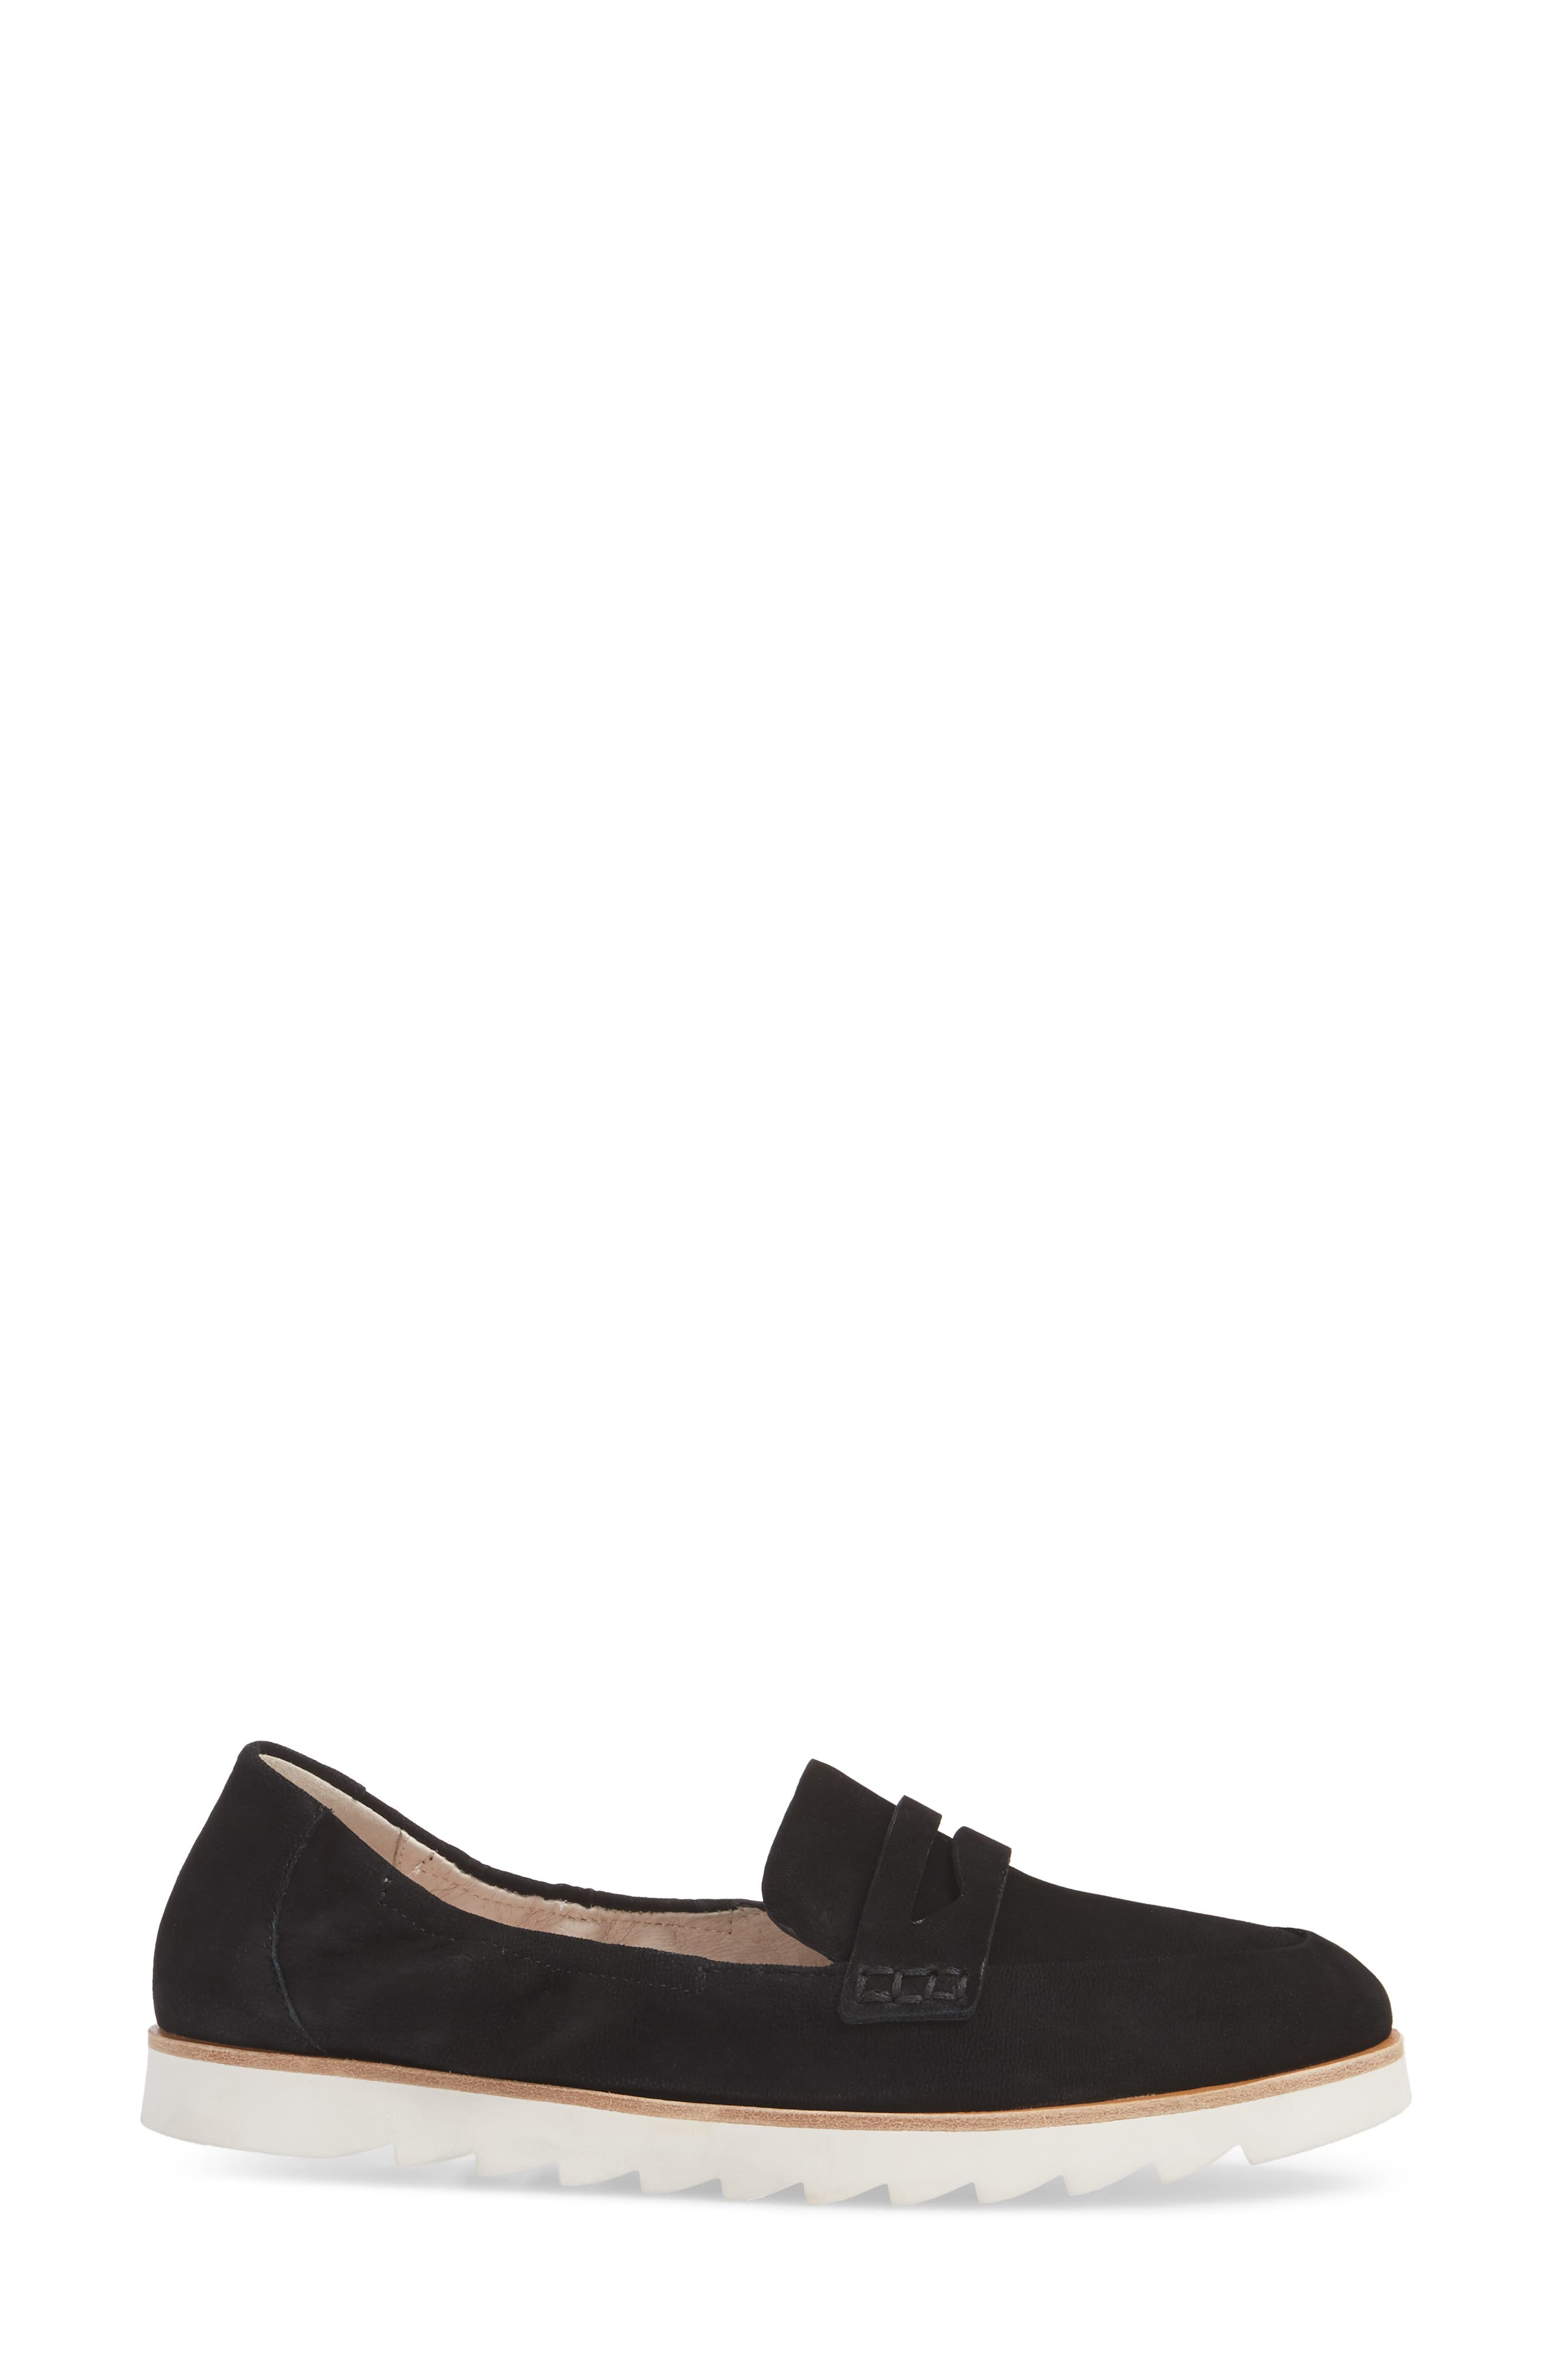 Rylee Penny Loafer,                             Alternate thumbnail 3, color,                             001